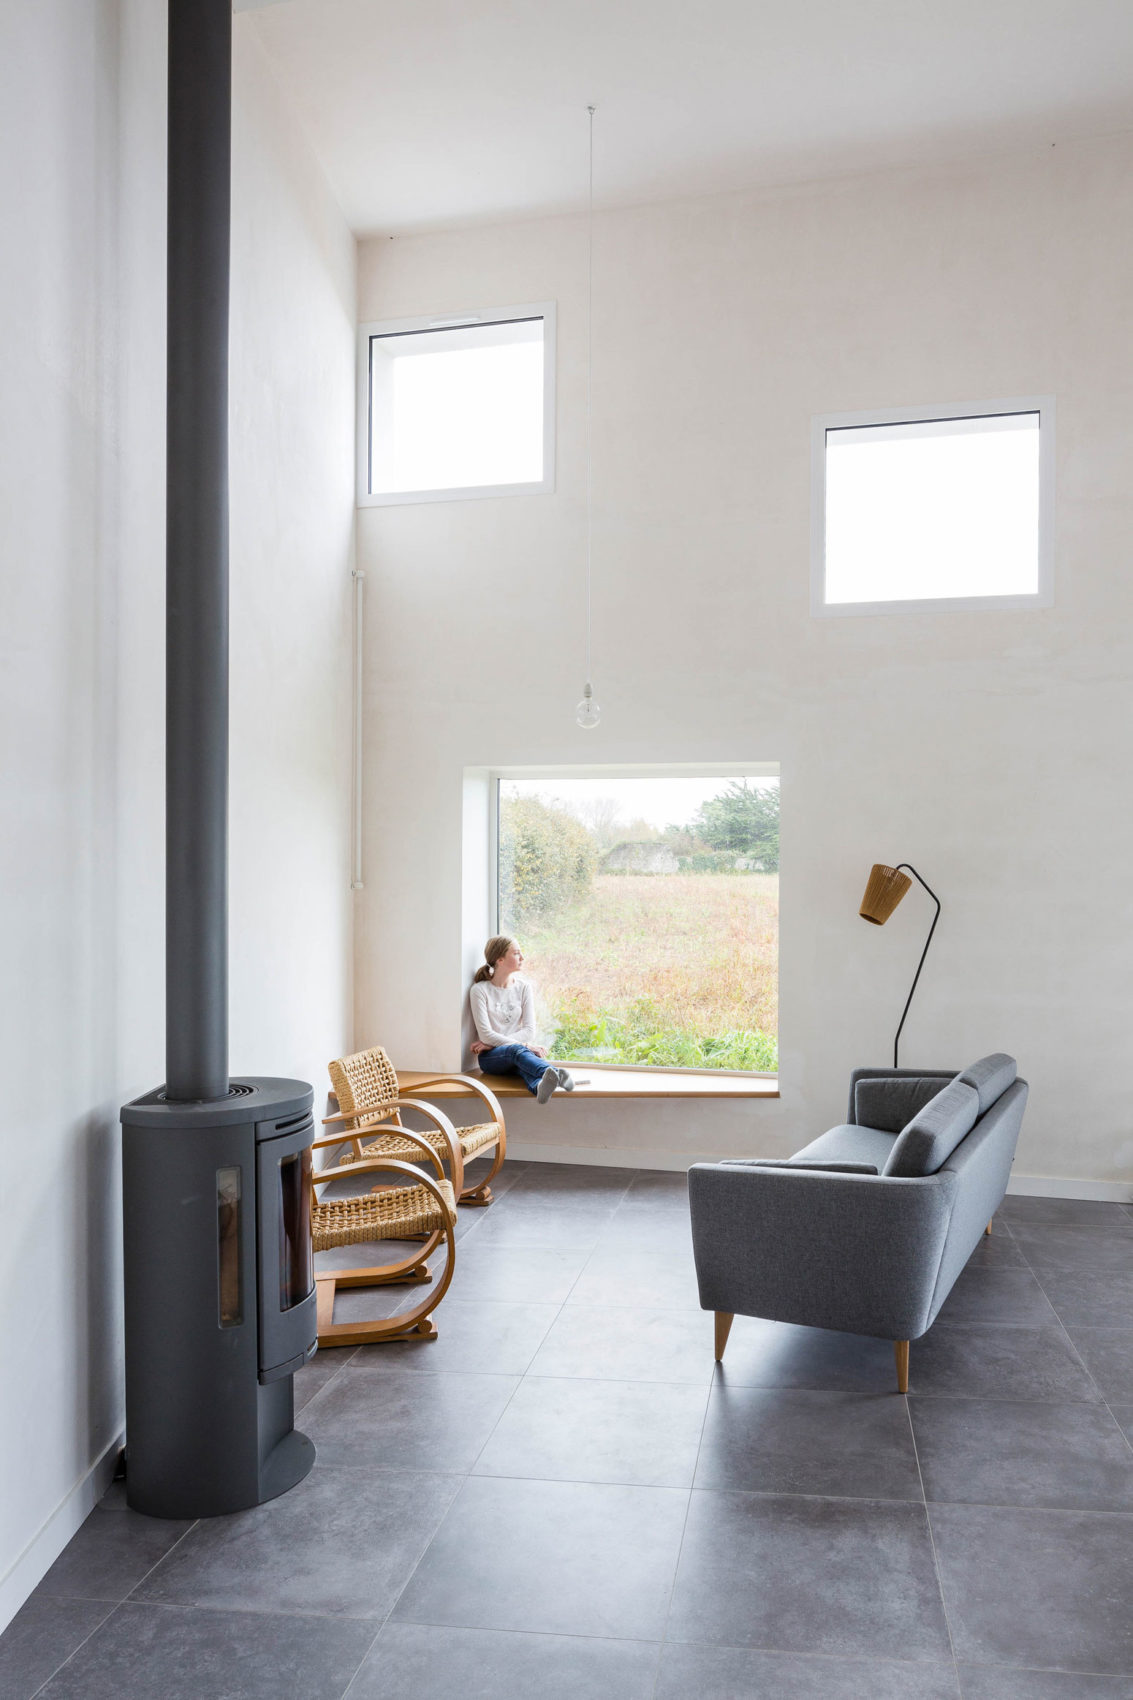 House for a Photographer by Studio Razavi Architecture (15)